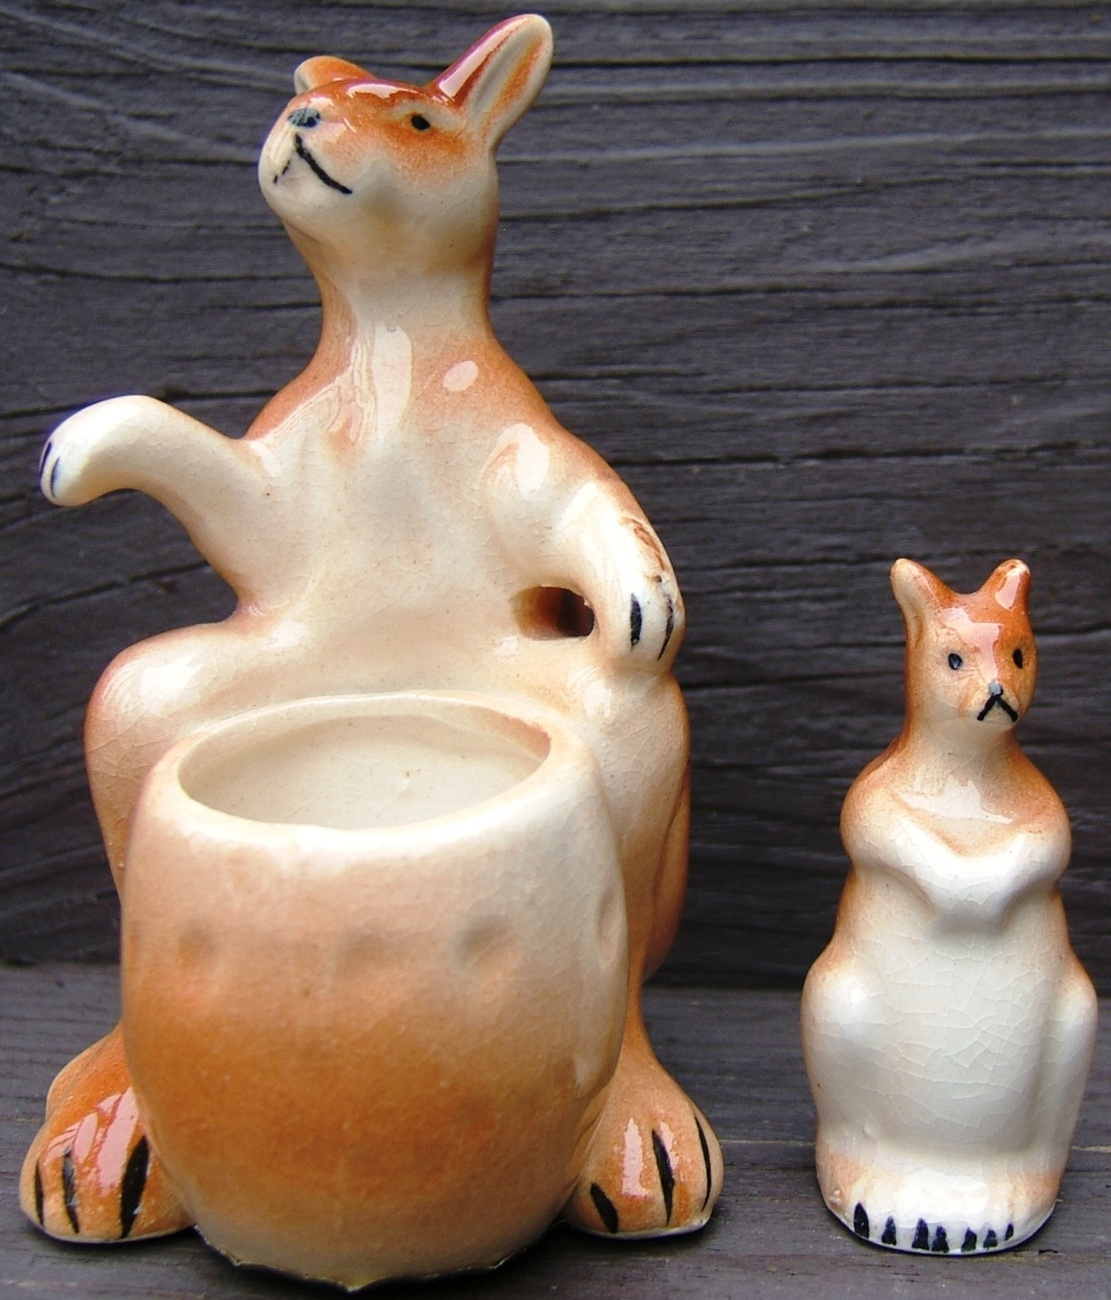 Vintage Kangaroo and Joey Salt SOUVENIR Ceramic Salt and Pepper Shaker Set JAPAN